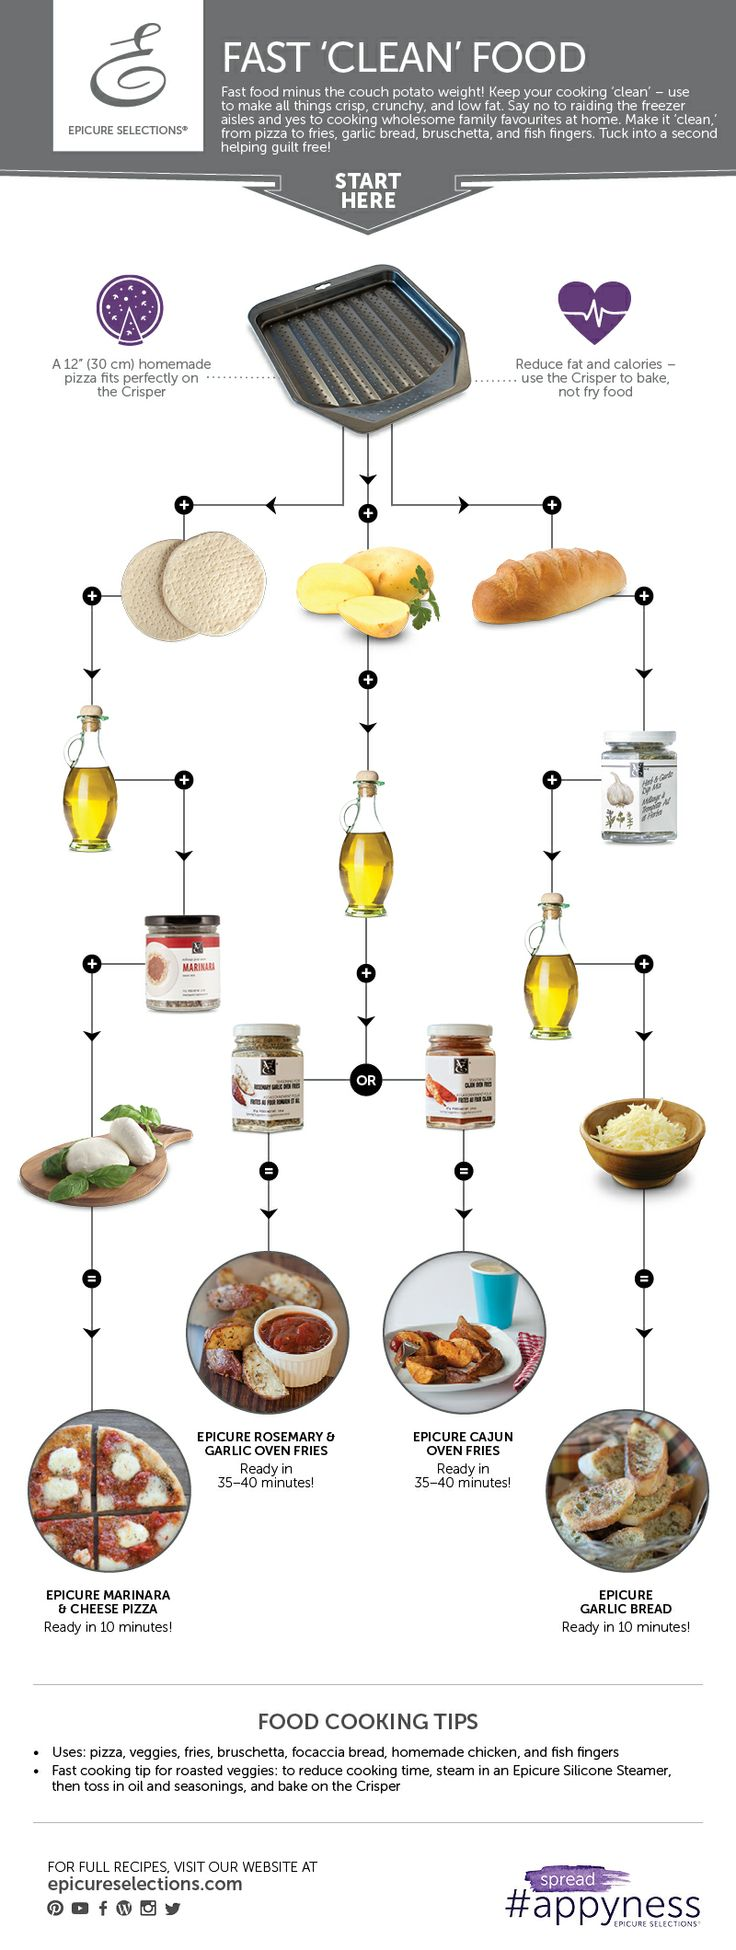 17 Best images about Everything Epicure on Pinterest.